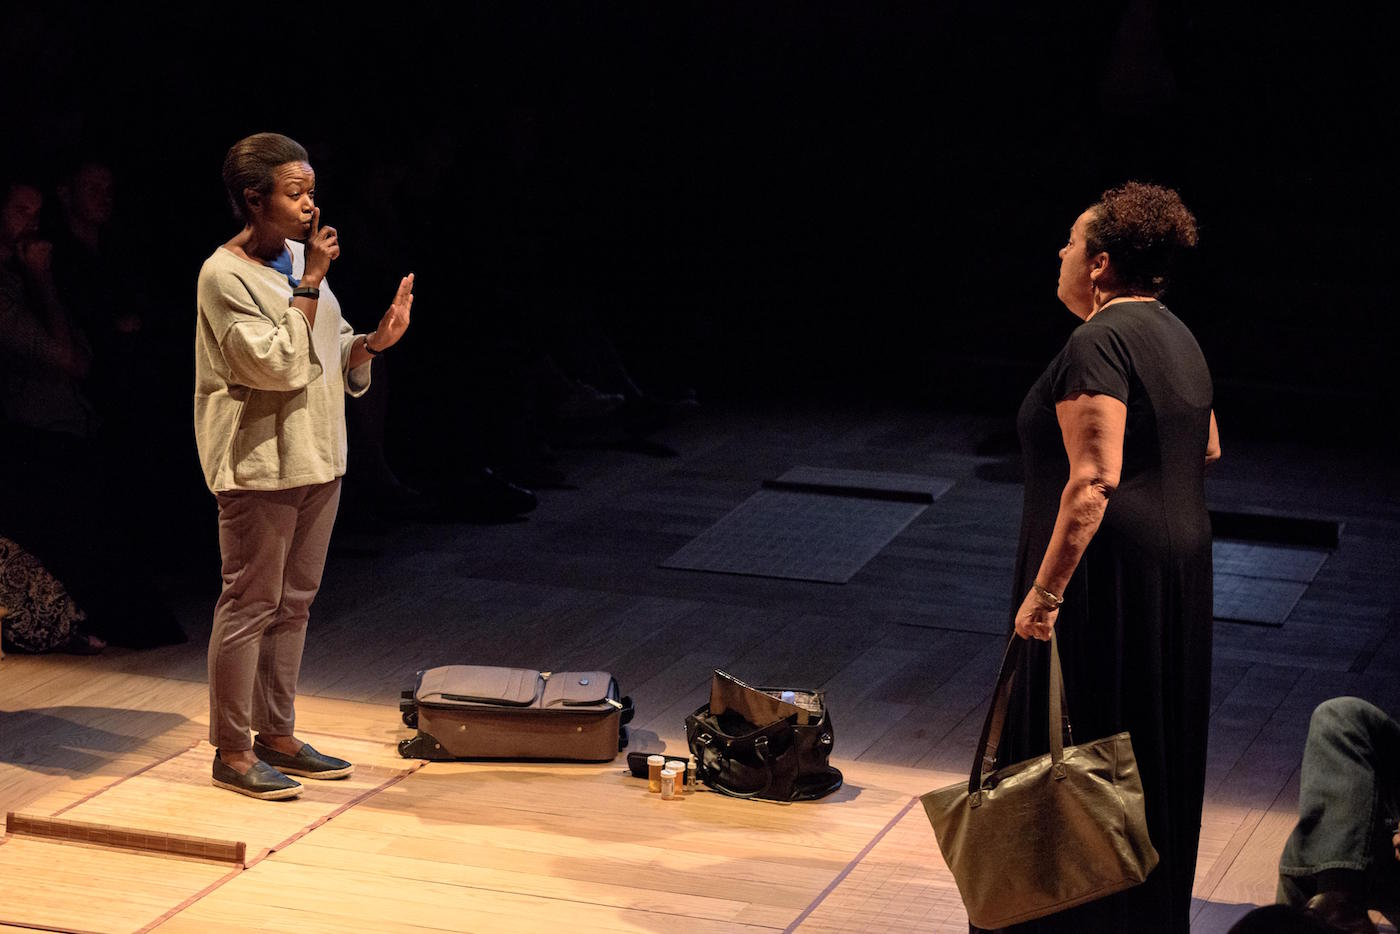 Marcia DeBonis and Quincy Tyler Bernstine in a scene from Bess Wohl's Small Mouth Sounds, directed by Rachel Chavkin at the Pershing Square Signature Center (photo by Ben Arons).